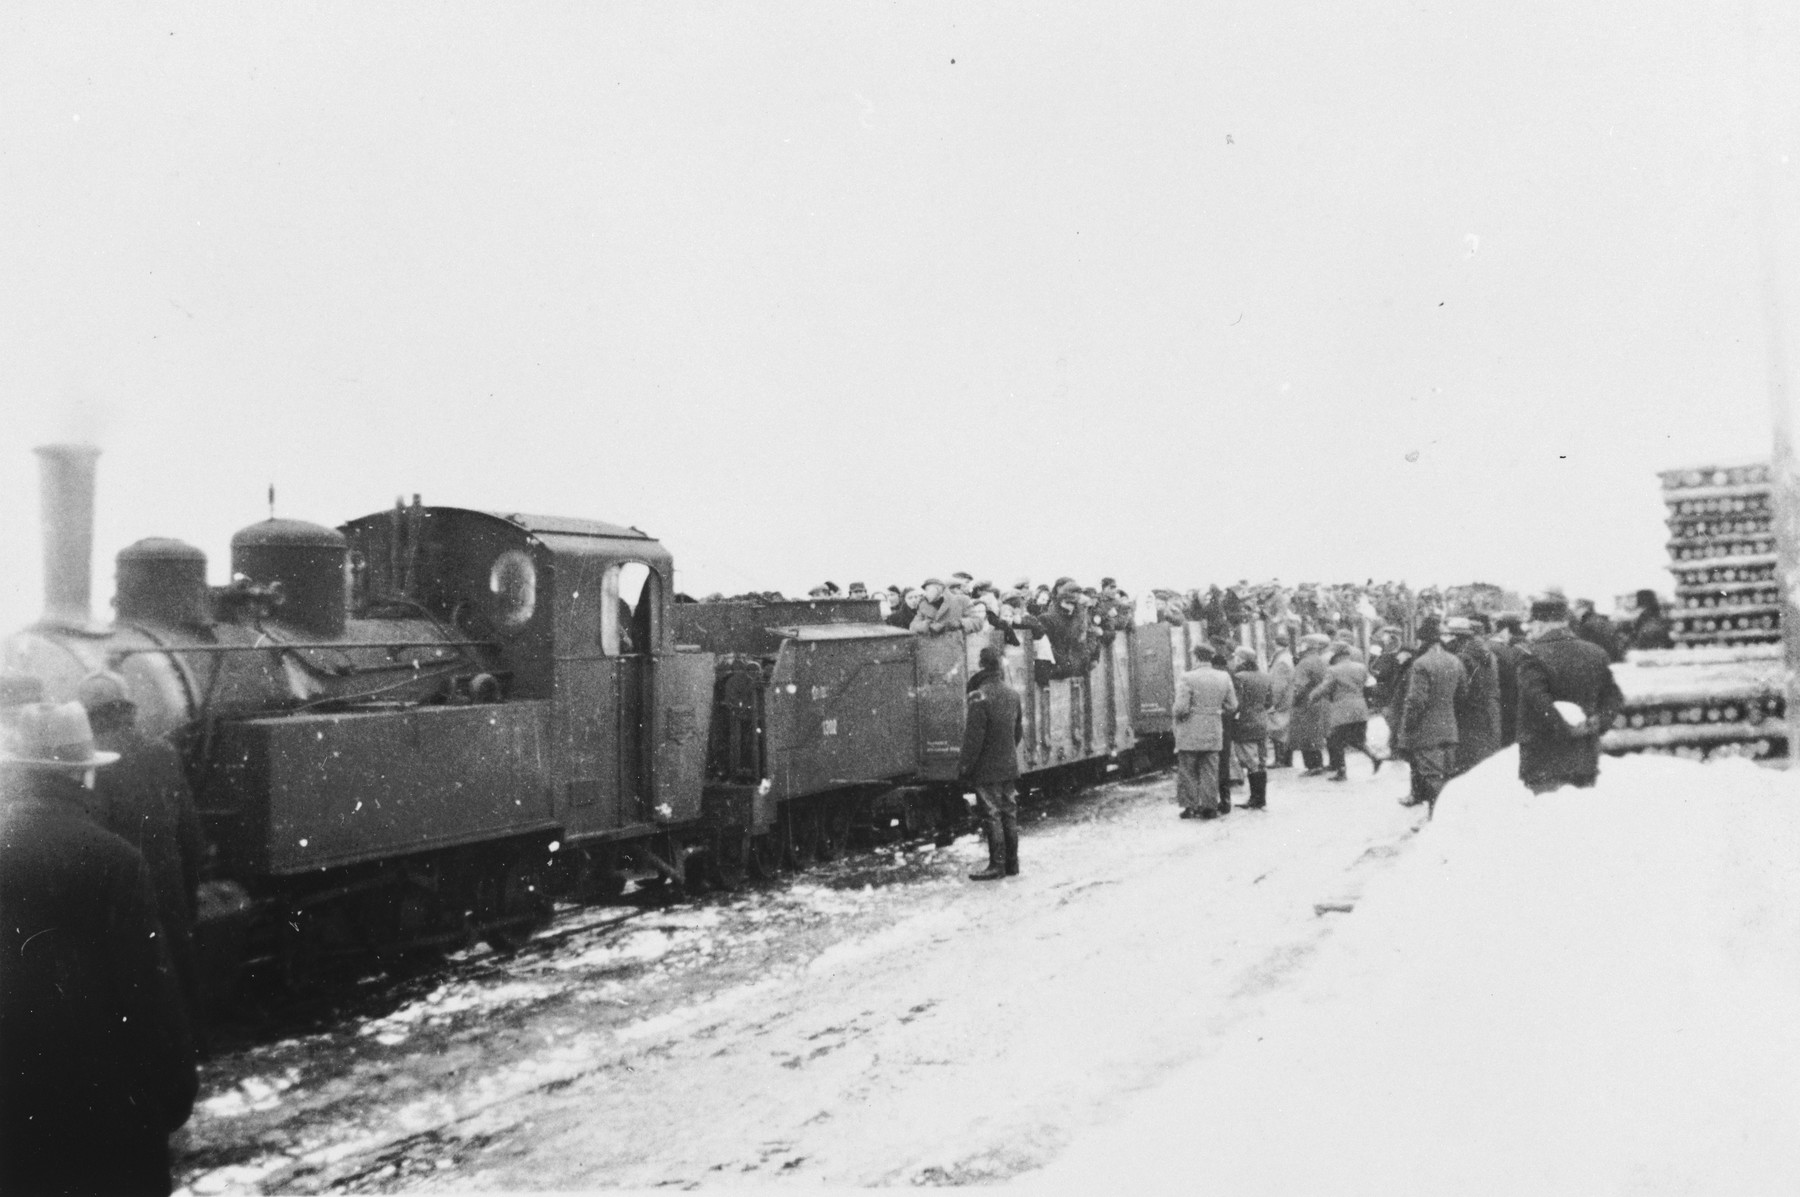 Jews who have been expelled from the town of Plock are resettled in Chmielnik in open train cars.